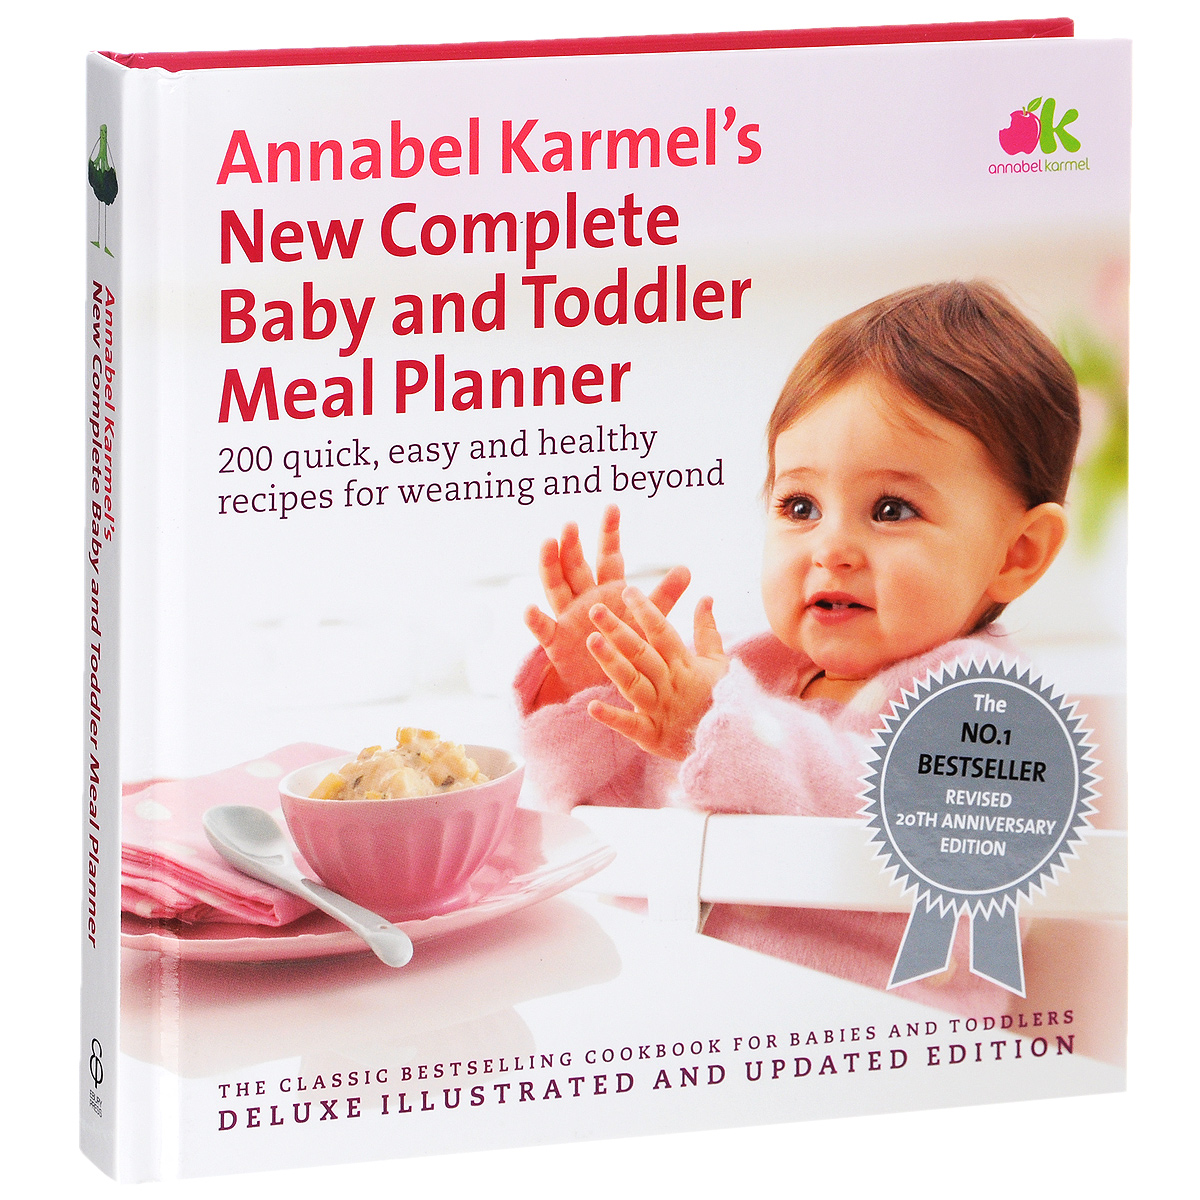 Annabel Karmel's New Complete Baby and Toddler Meal Planner: 200 Quick, Easy, and Healthy Recipes for Weaning and Beyond